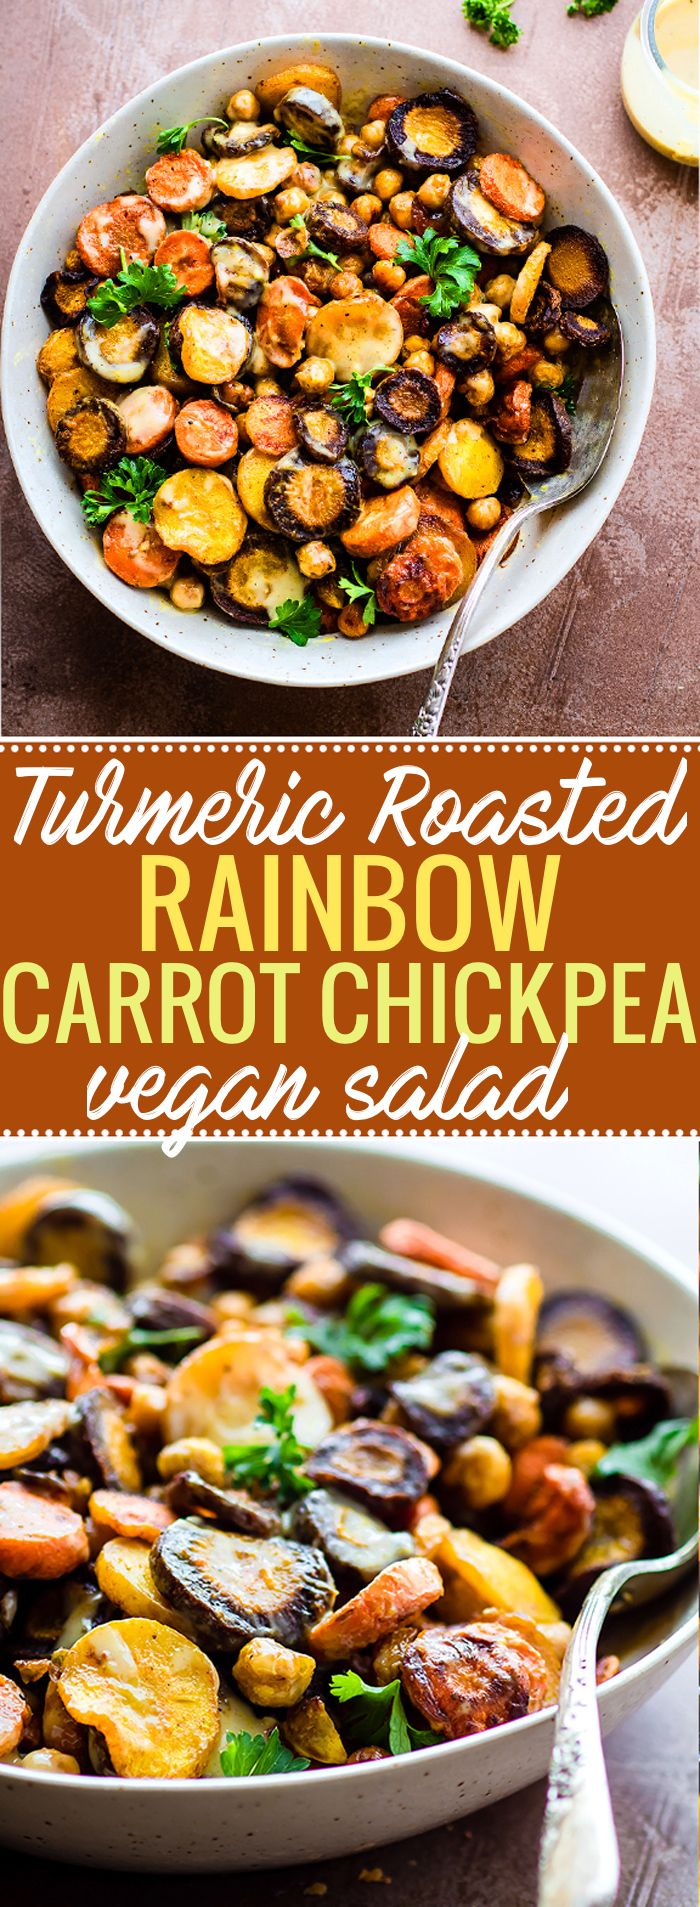 Turmeric Roasted Chickpea Carrot Salad with Apple Cider Tahini Dressing. A vegan salad with a golden glow! This Turmeric Roasted Chickpea Rainbow Carrot Salad is simple to make yet wholesome and nourishing. A plant based main meal or a healthy gluten free side dish to pass around the table.  @COTTERCRUNCH